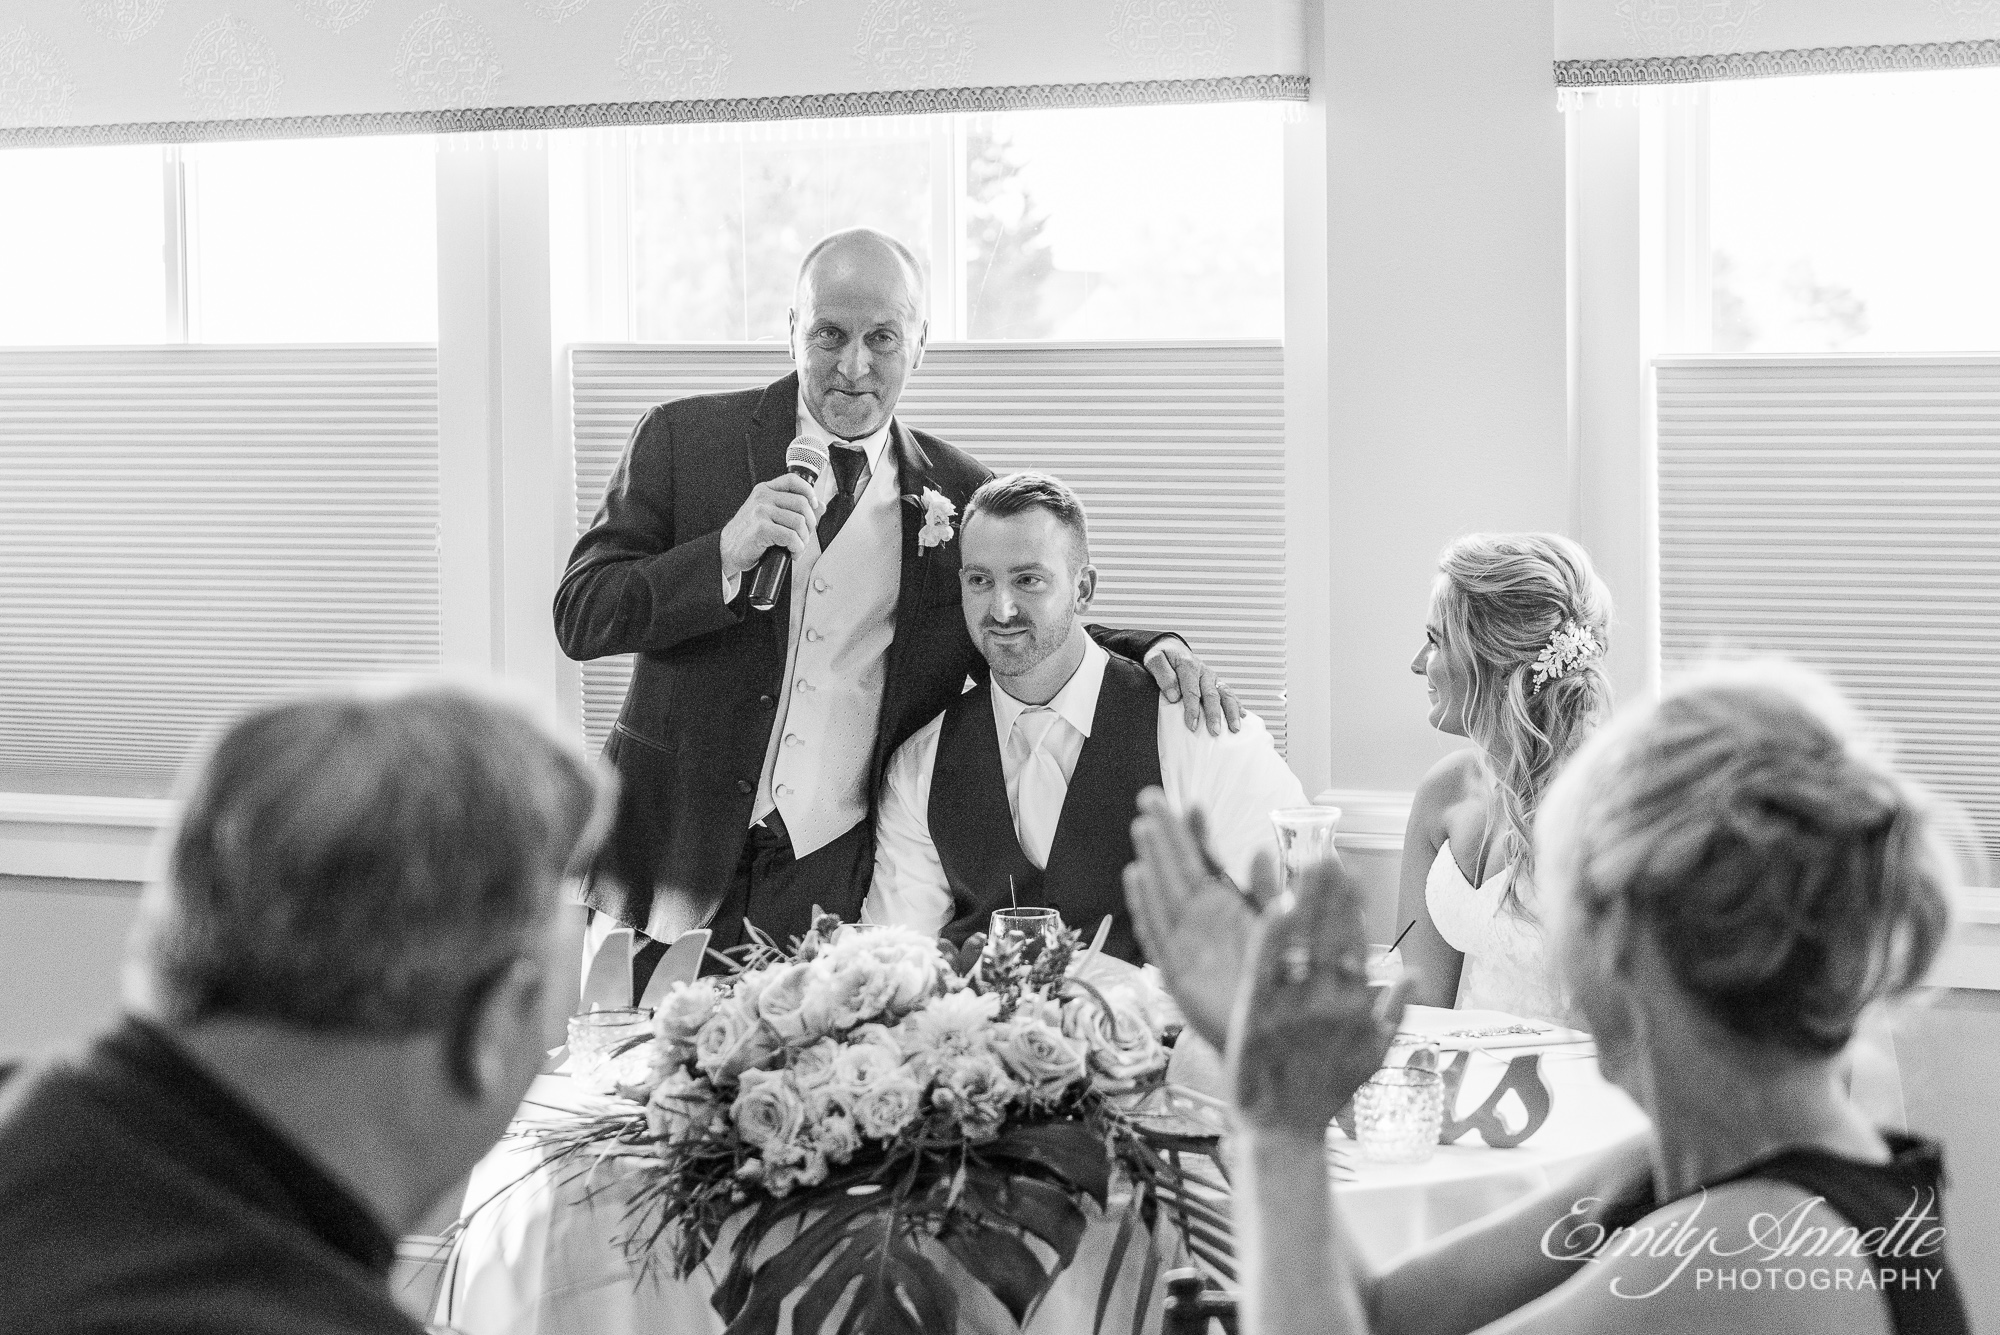 The father of the bride gives a welcome blessing during the wedding reception at Herrington on the Bay in North Beach, Maryland